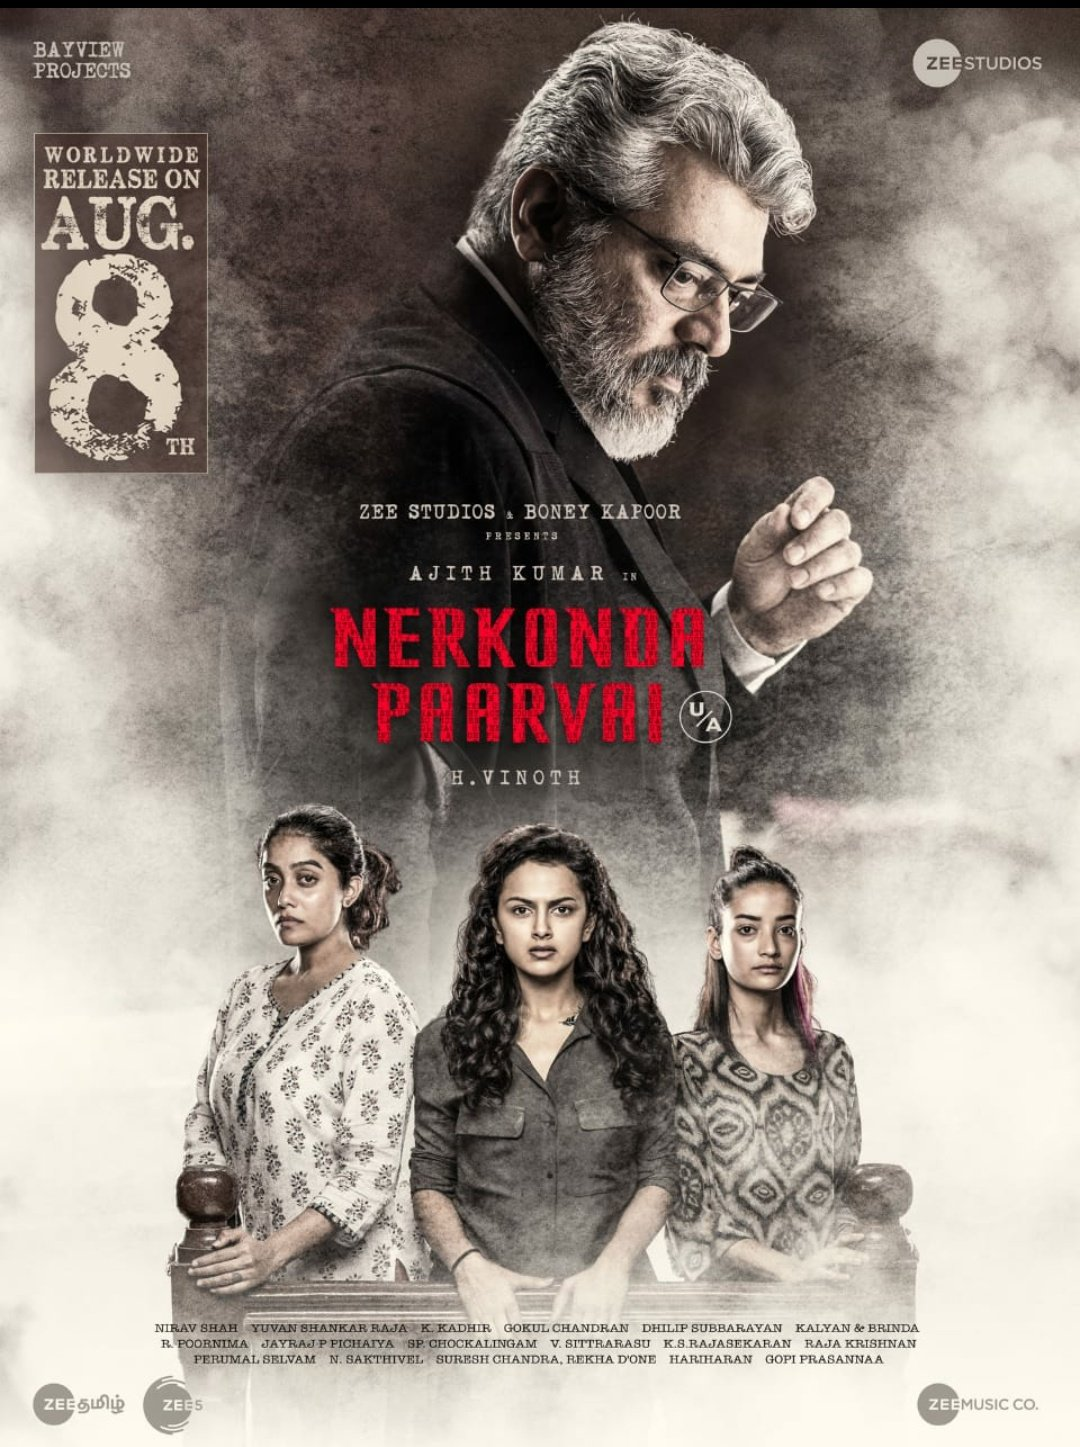 Nerkonda Paarvai is the official Tamil remake of the Bollywood film Pink. Photo courtesy: Twitter/@BoneyKapoor